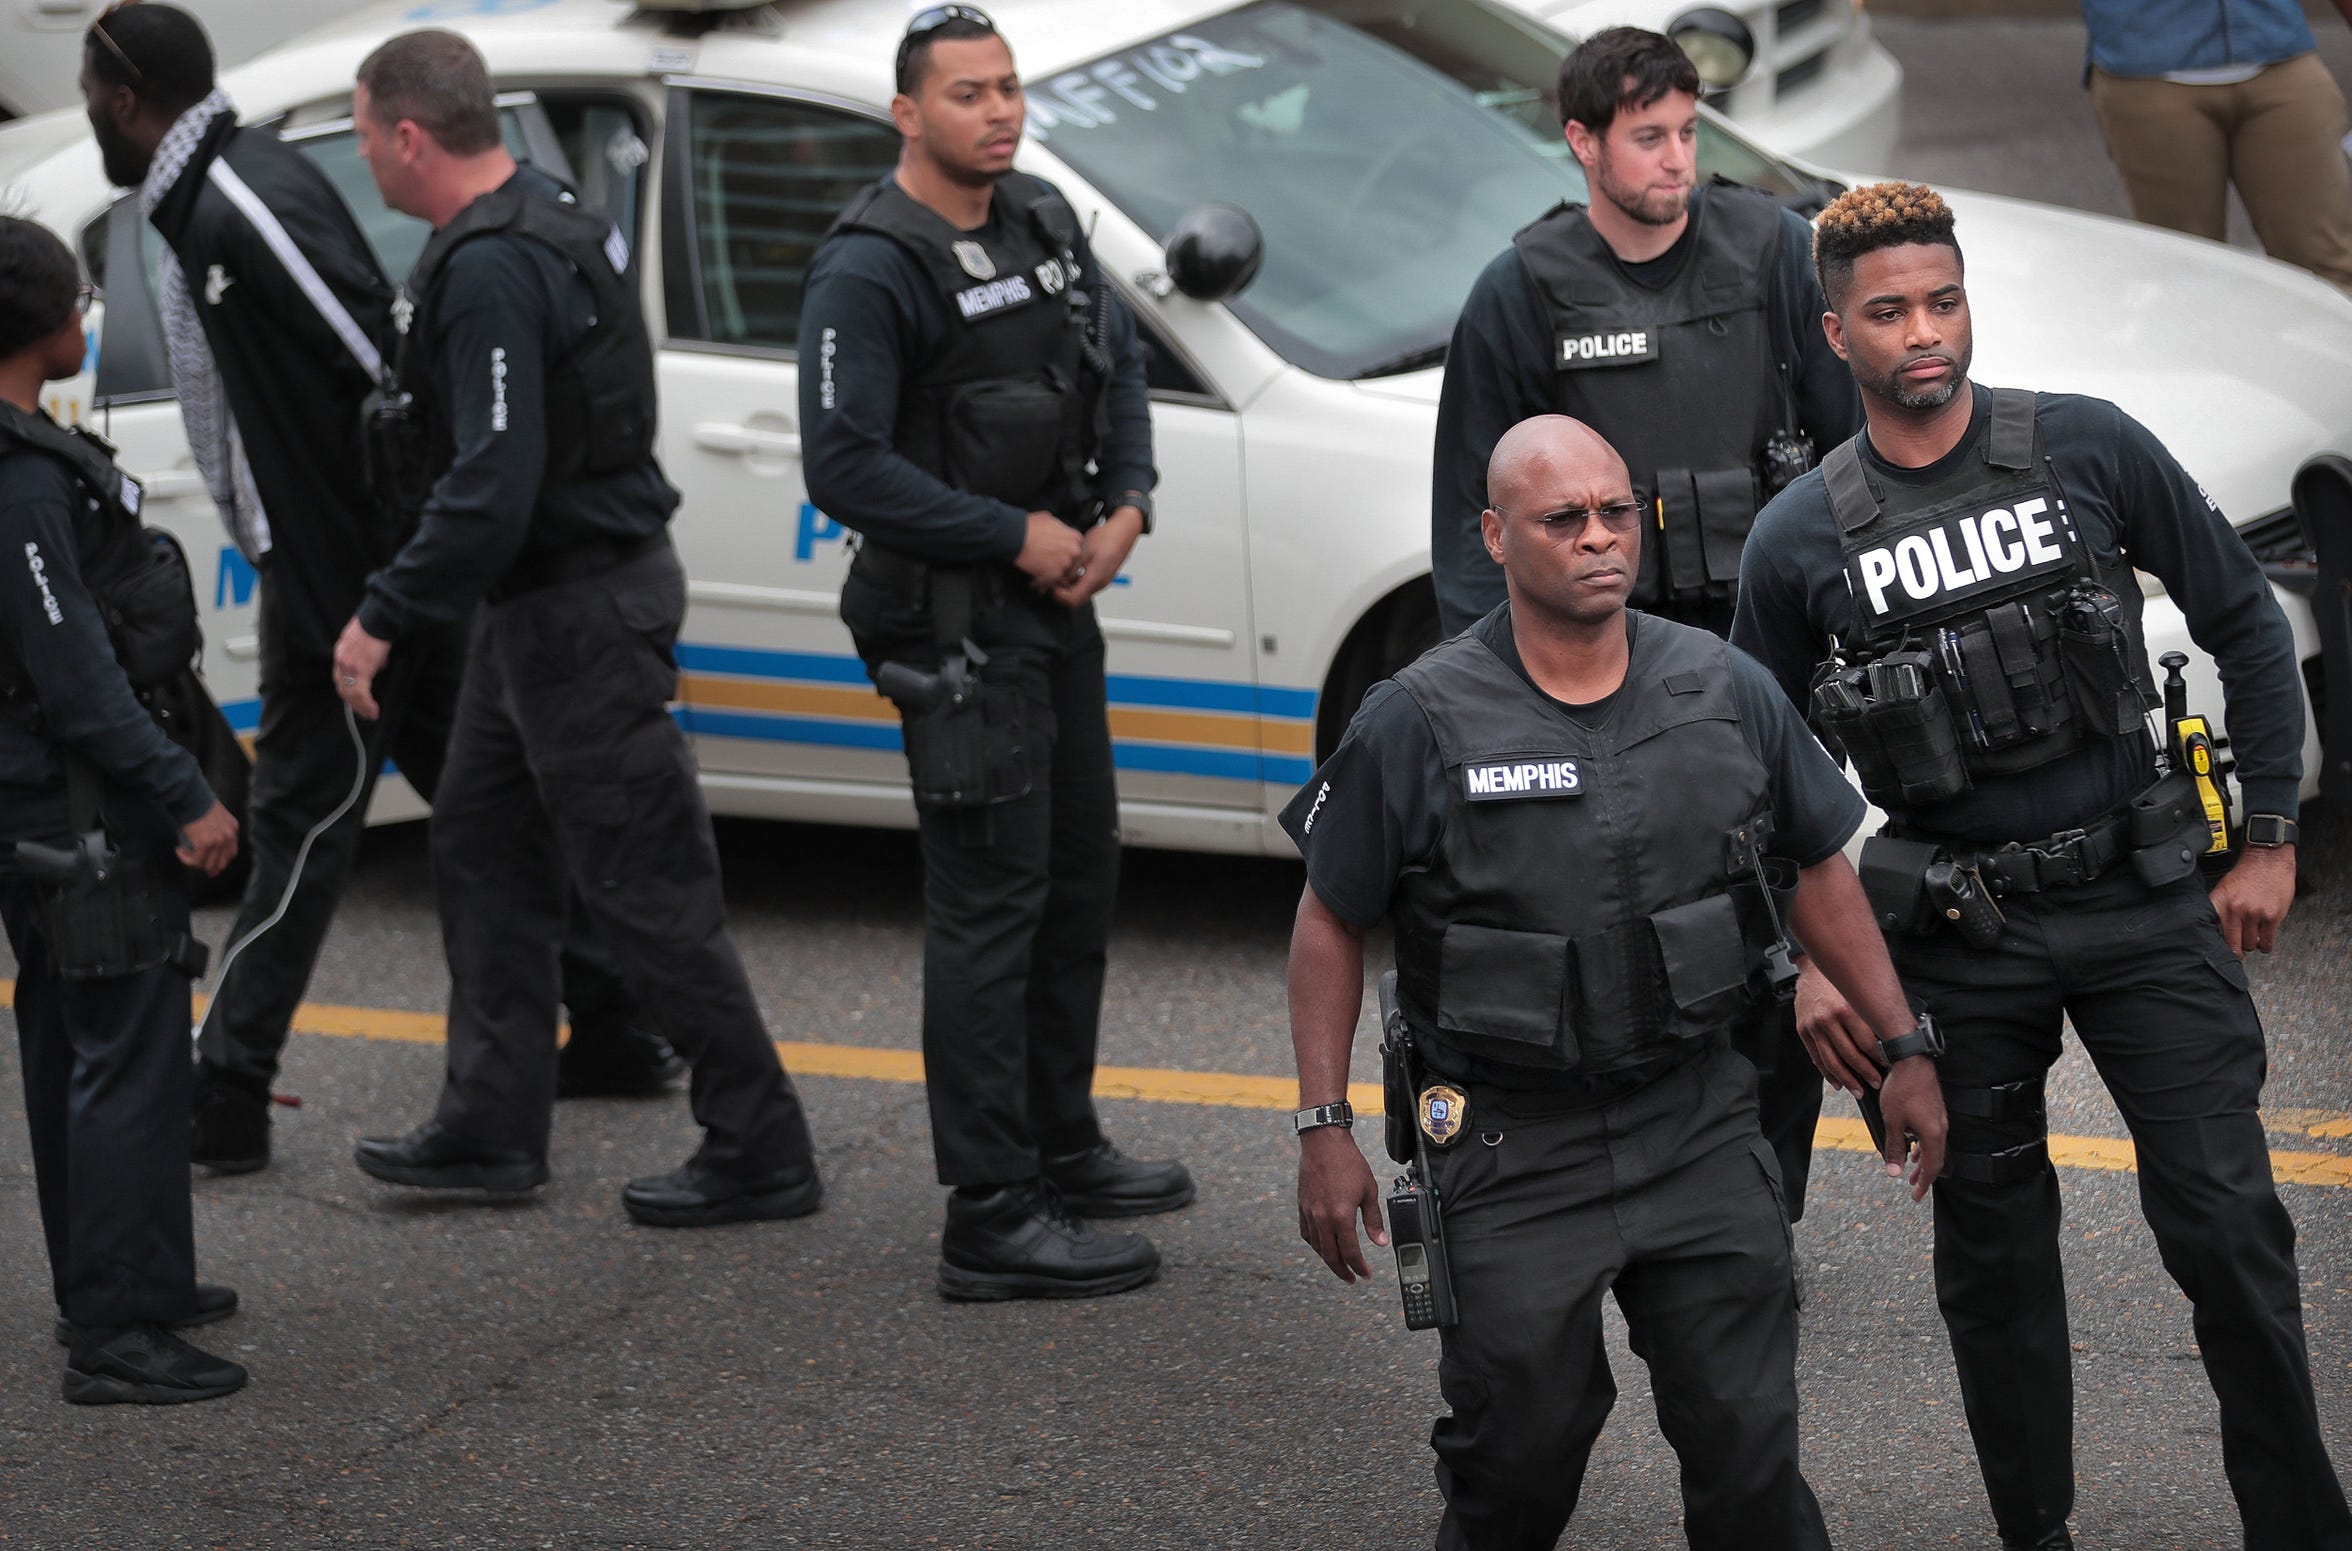 Memphis police officers assembled outside the Shelby County Justice Center during a demonstration in April 2018.